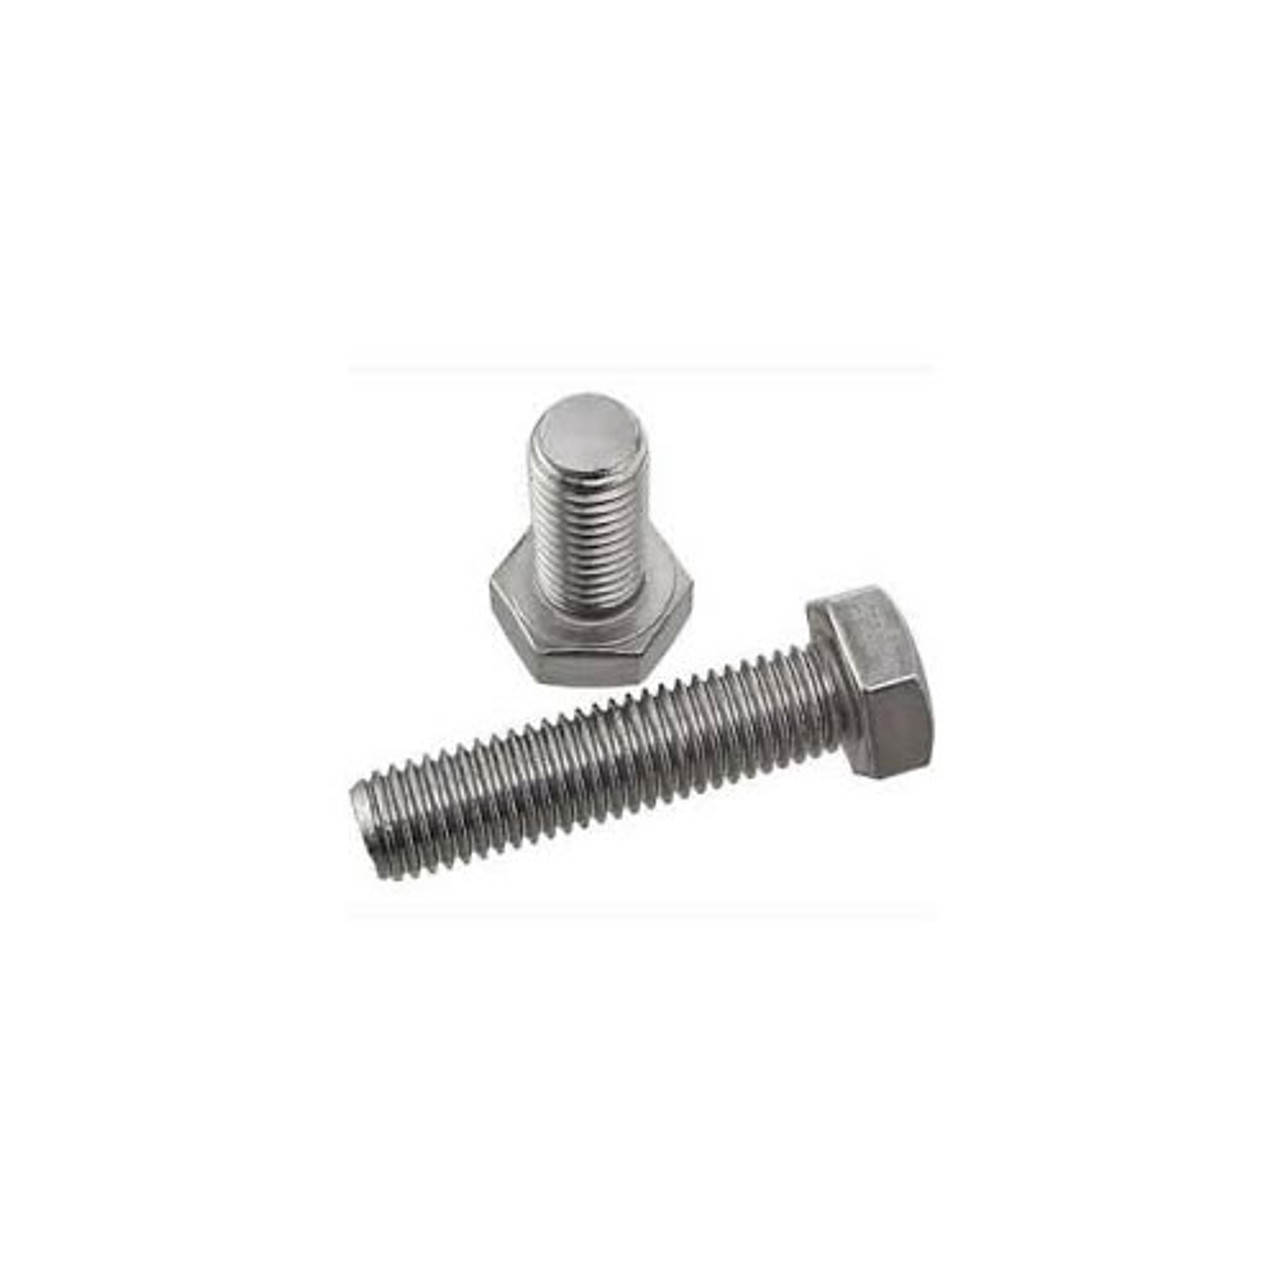 Hex Head Tap Bolt Stock Photo